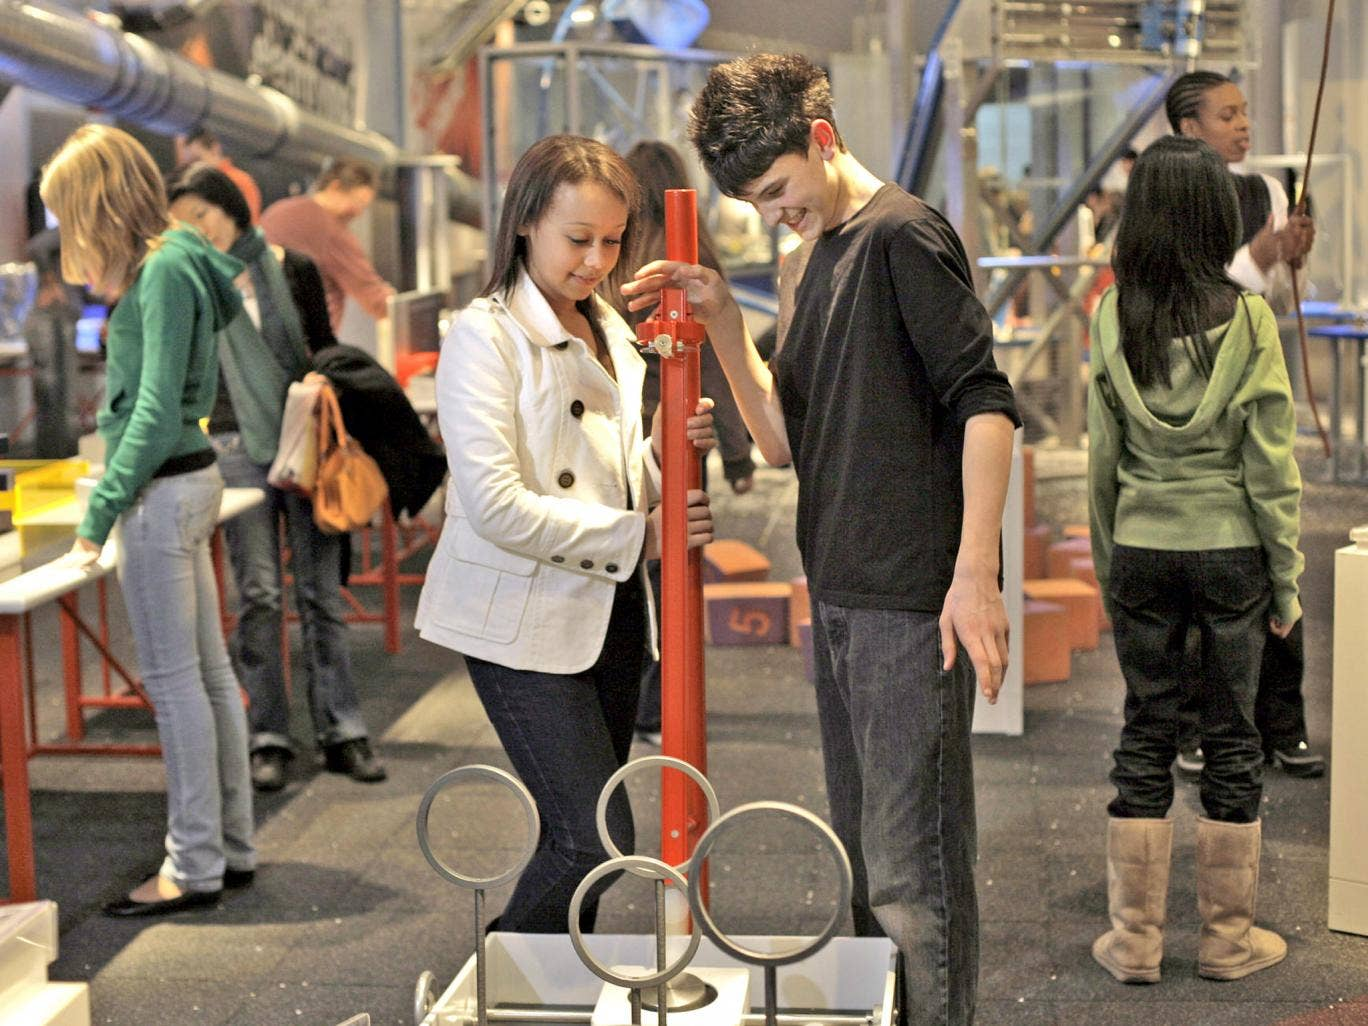 The appliance of science: hands-on learning at the Science Museum